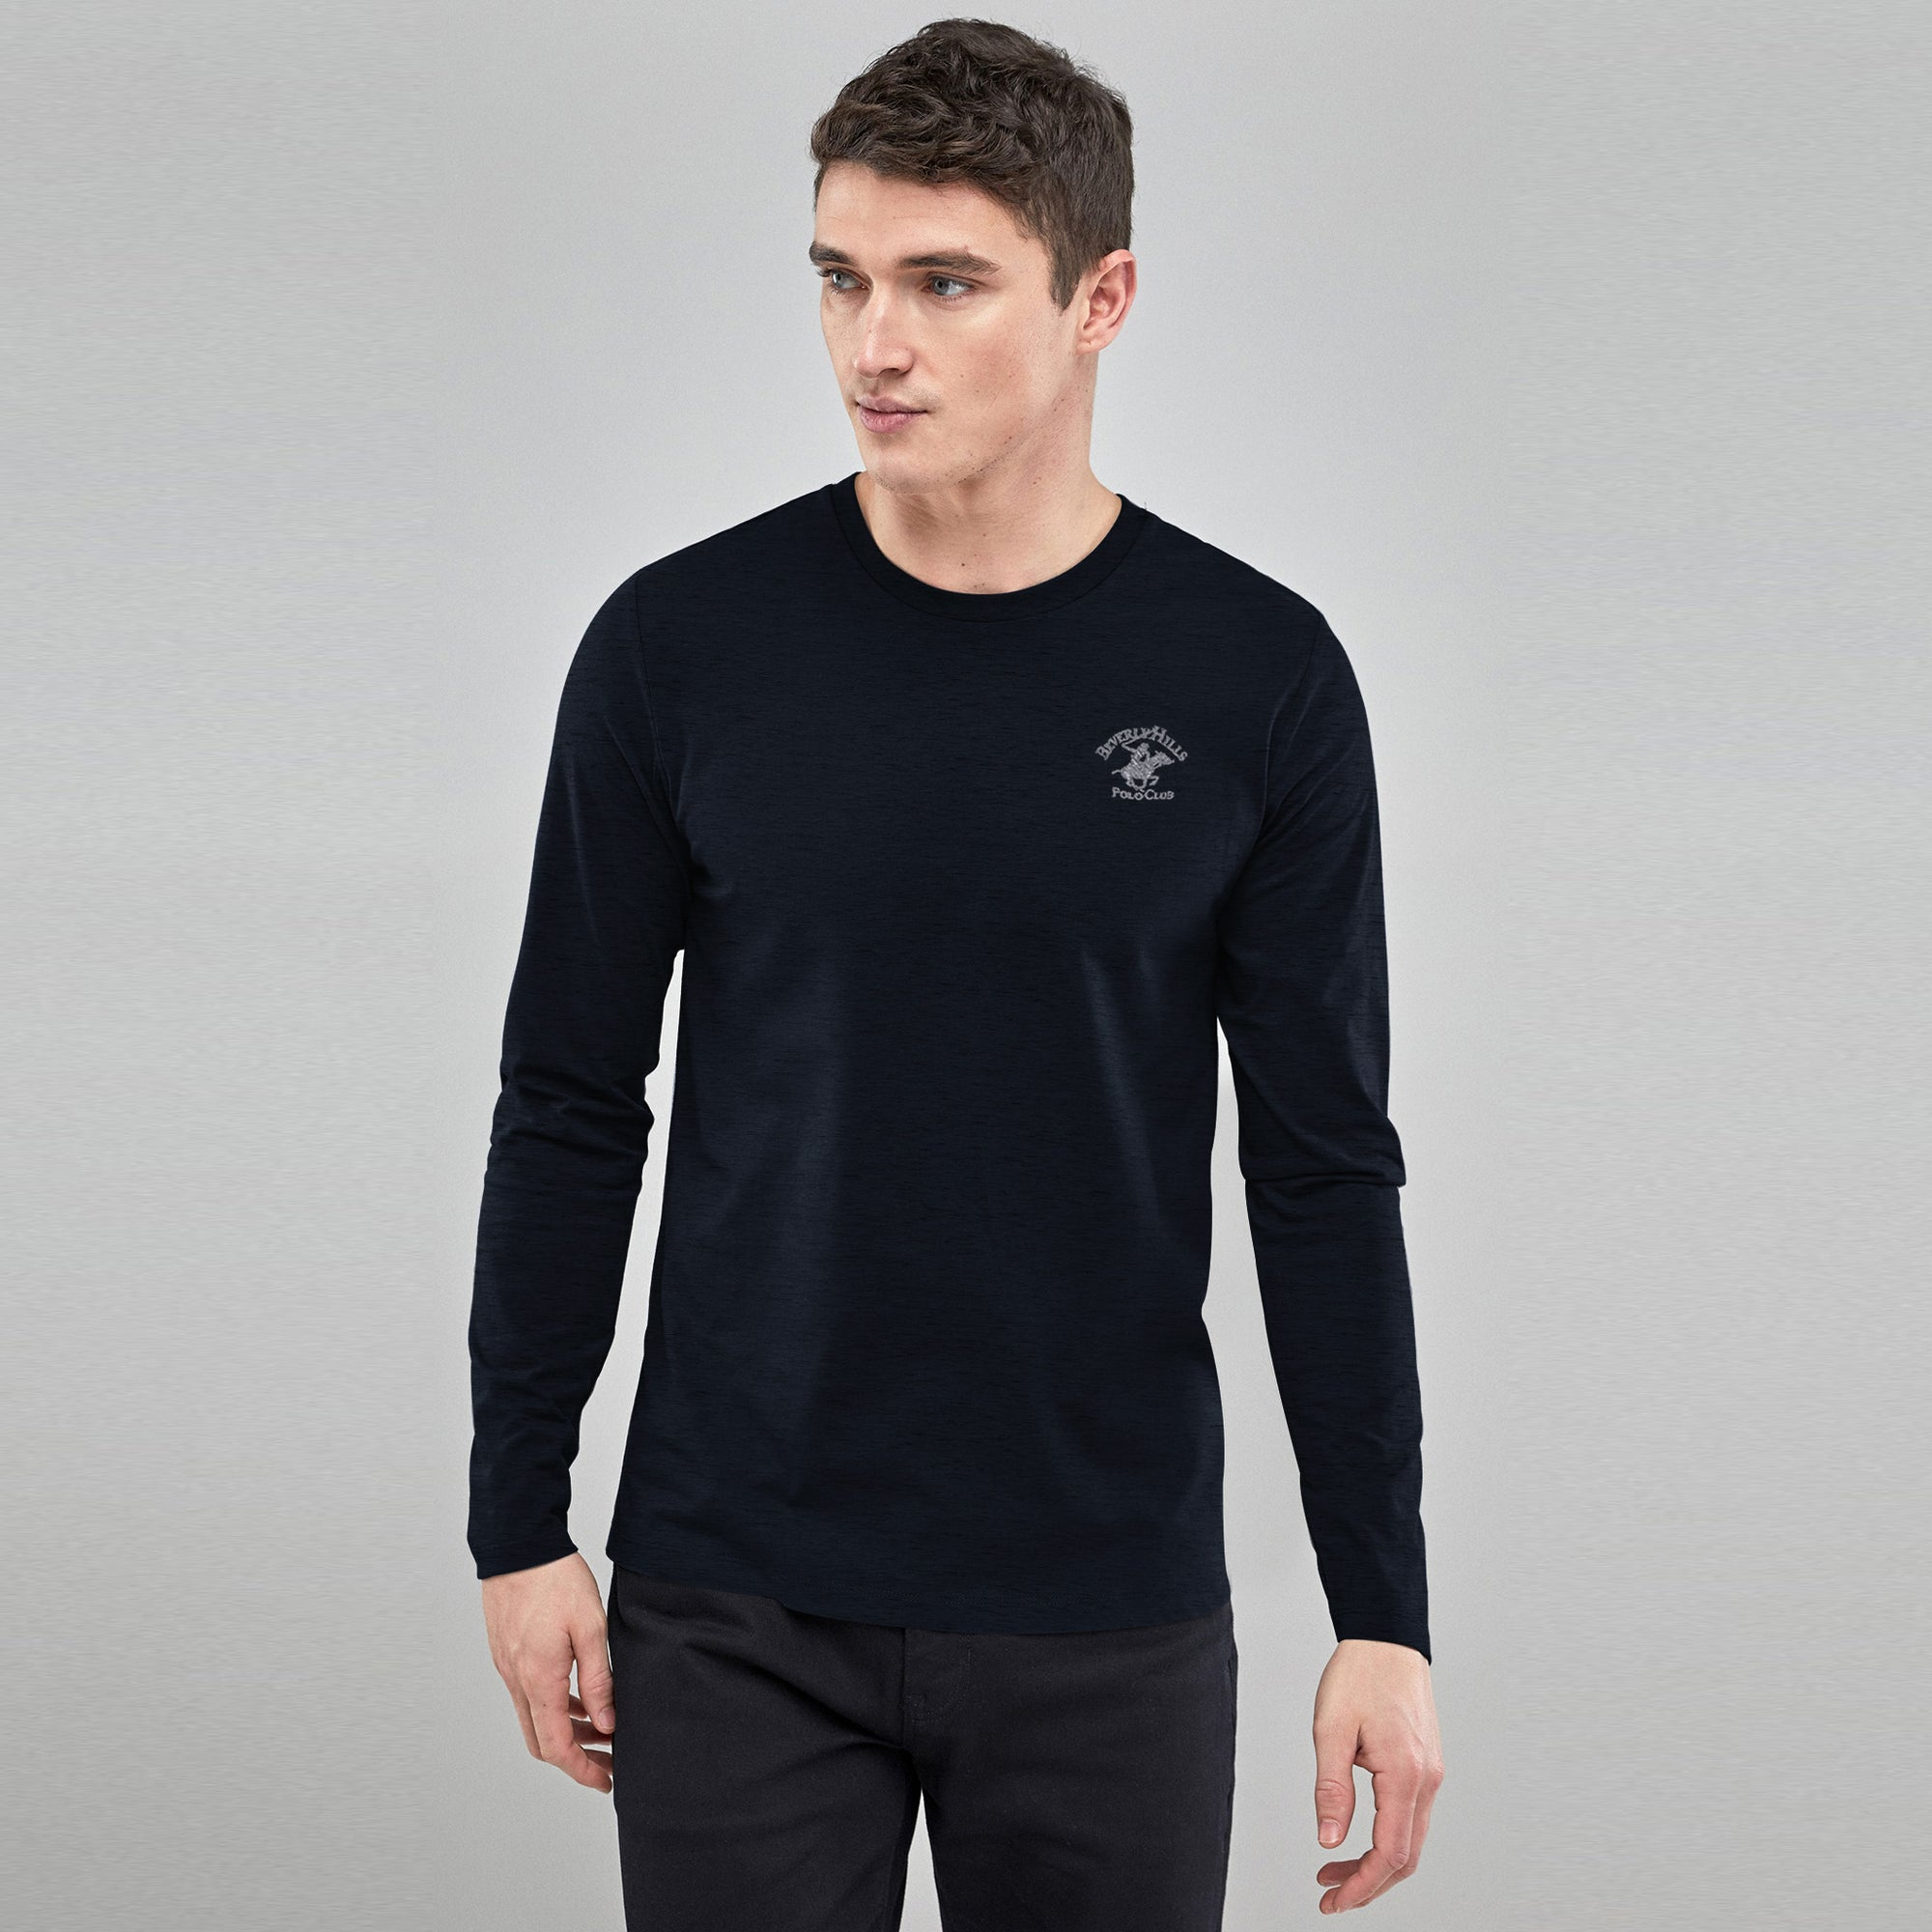 Beverly Hills Single Jersey Long Sleeve Tee Shirt For Men-Dark Navy With Black Melange-BE8889